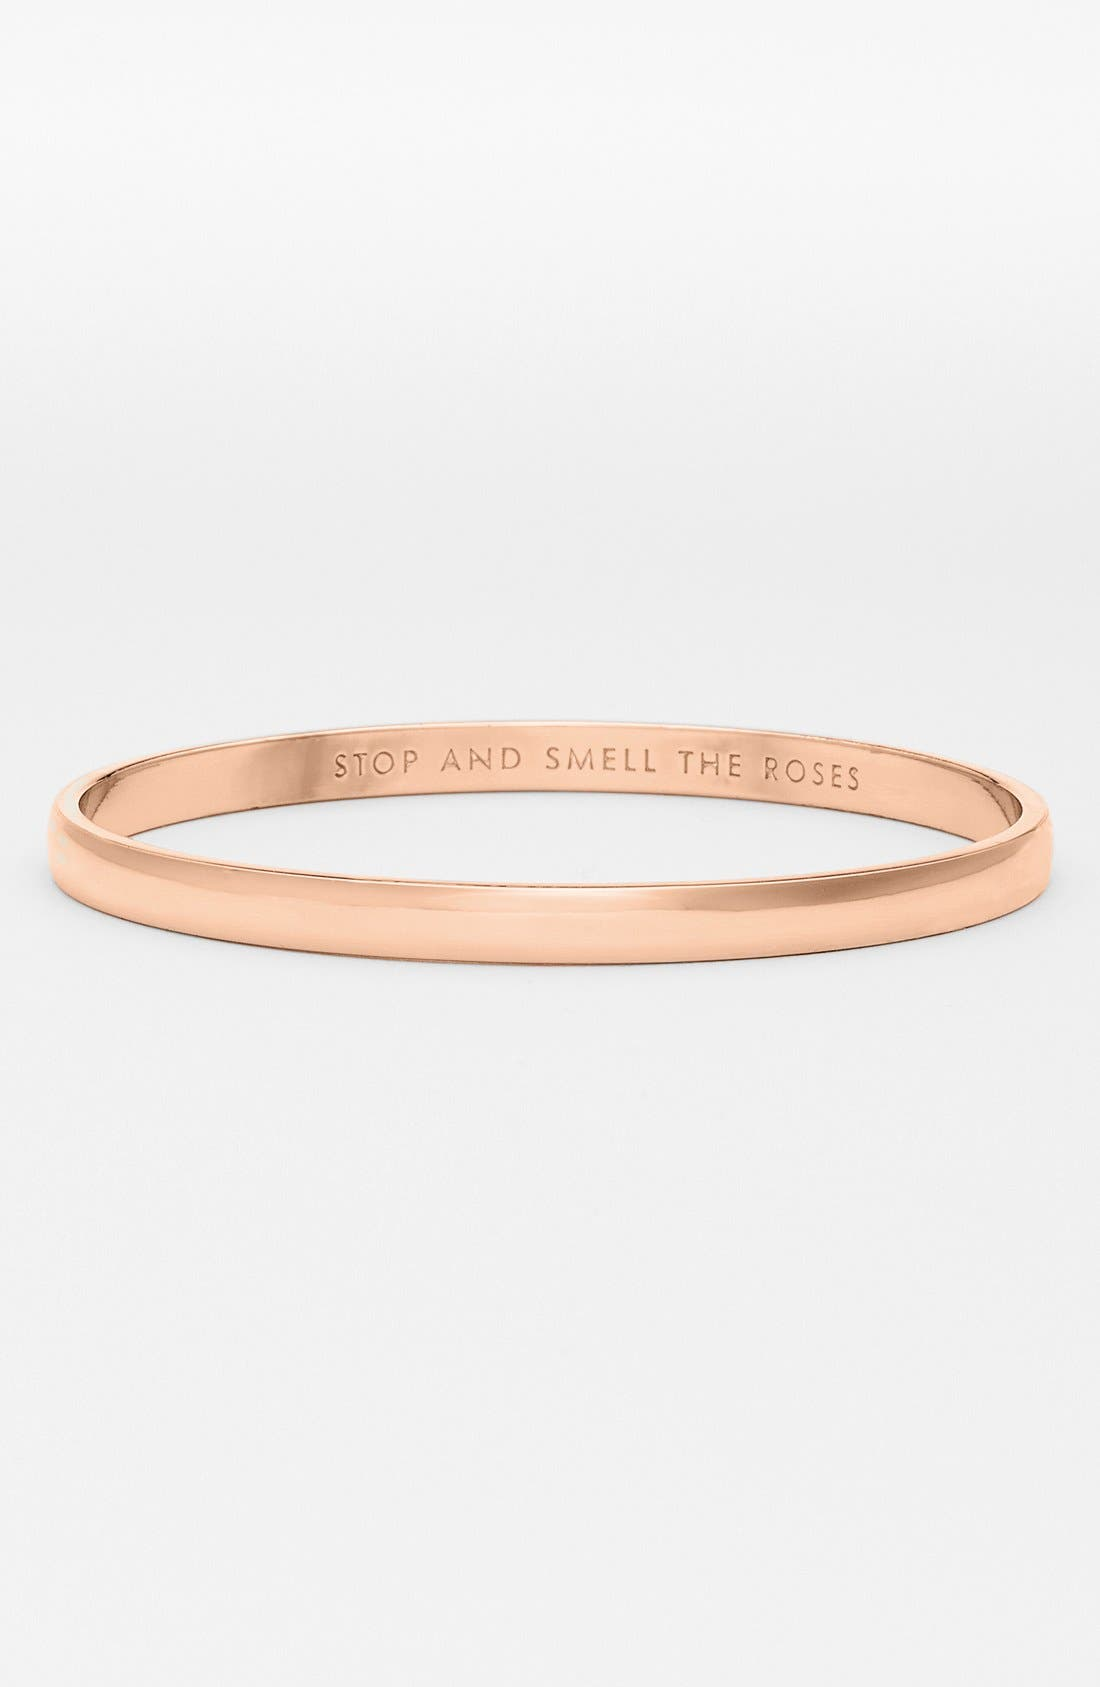 Main Image - kate spade new york 'idiom - stop and smell the roses' bangle